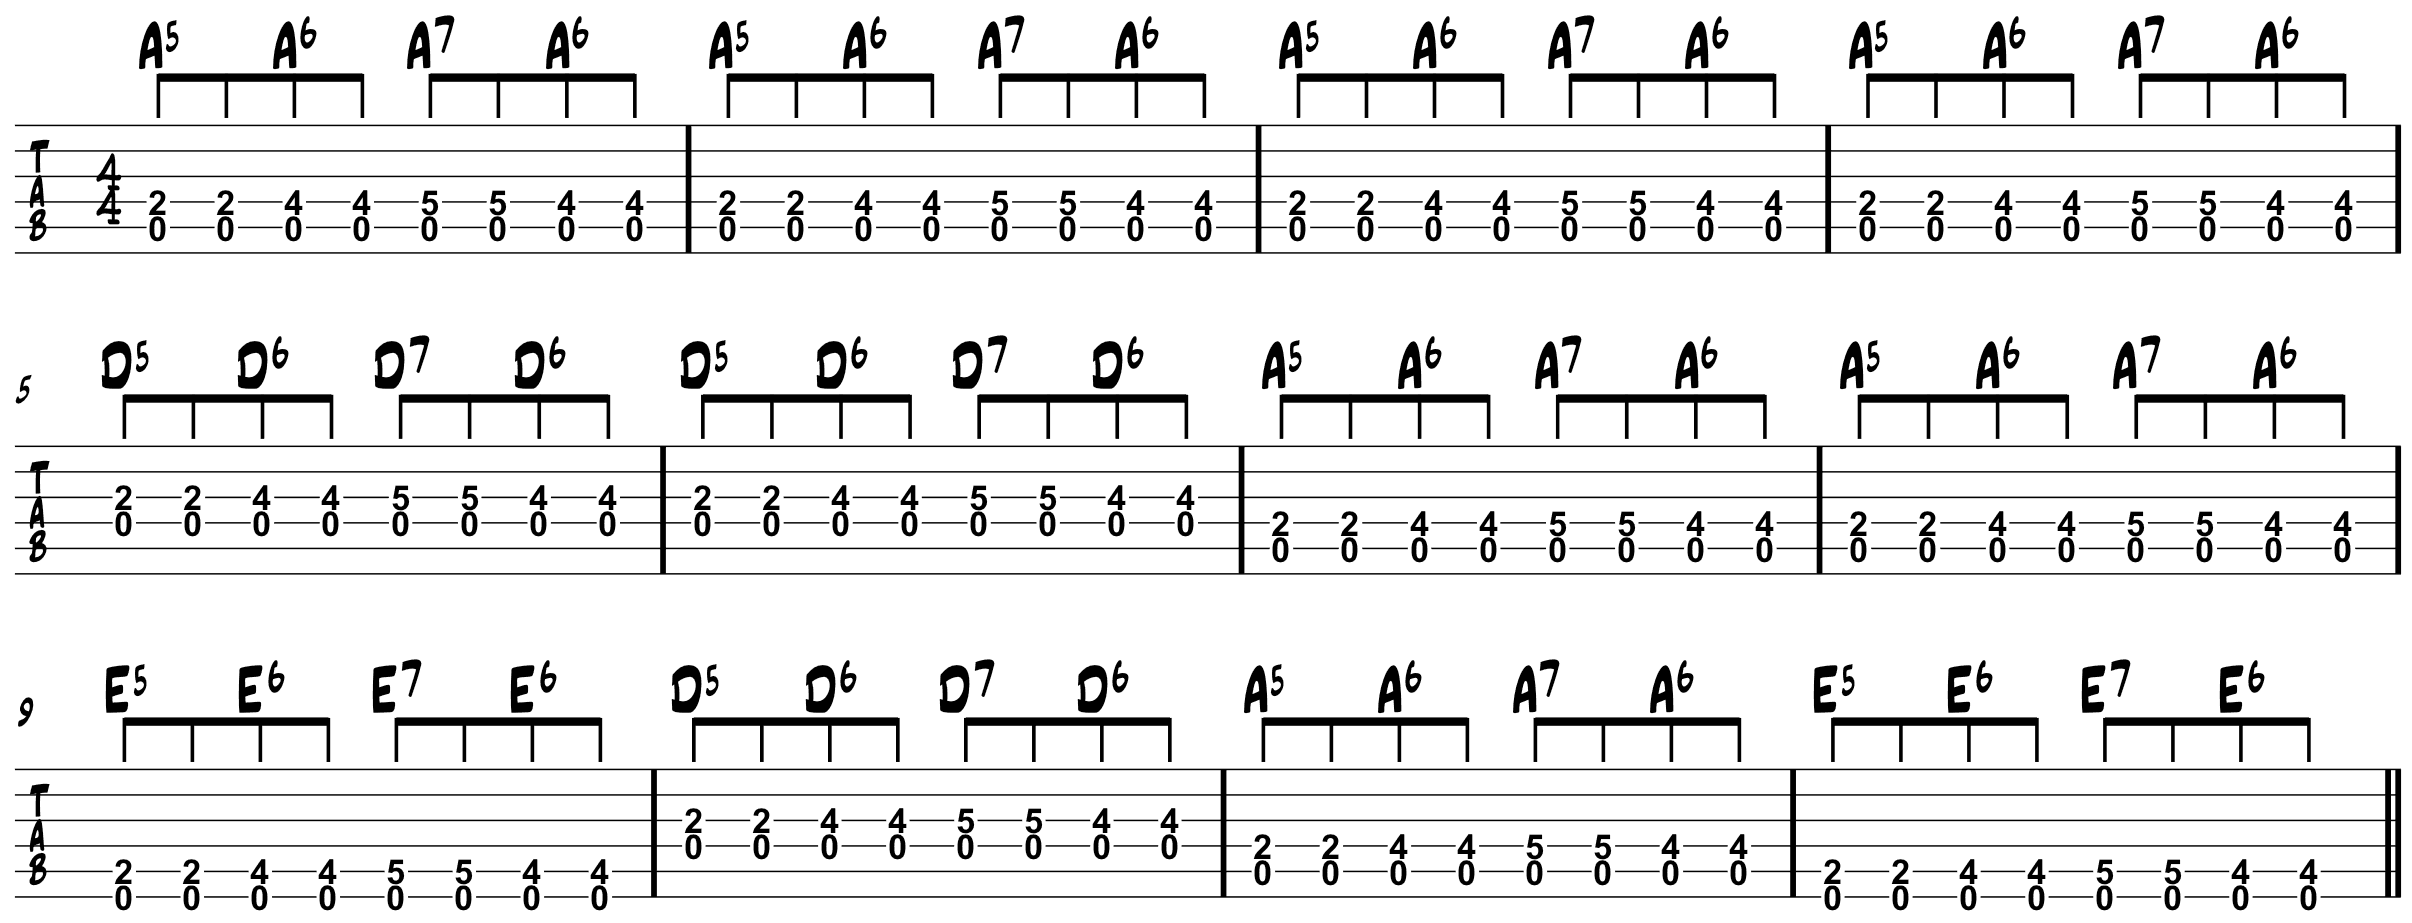 Guitar Blues Chords Every Player Must Know Jazz Rock And More A7 Chord Chart 3